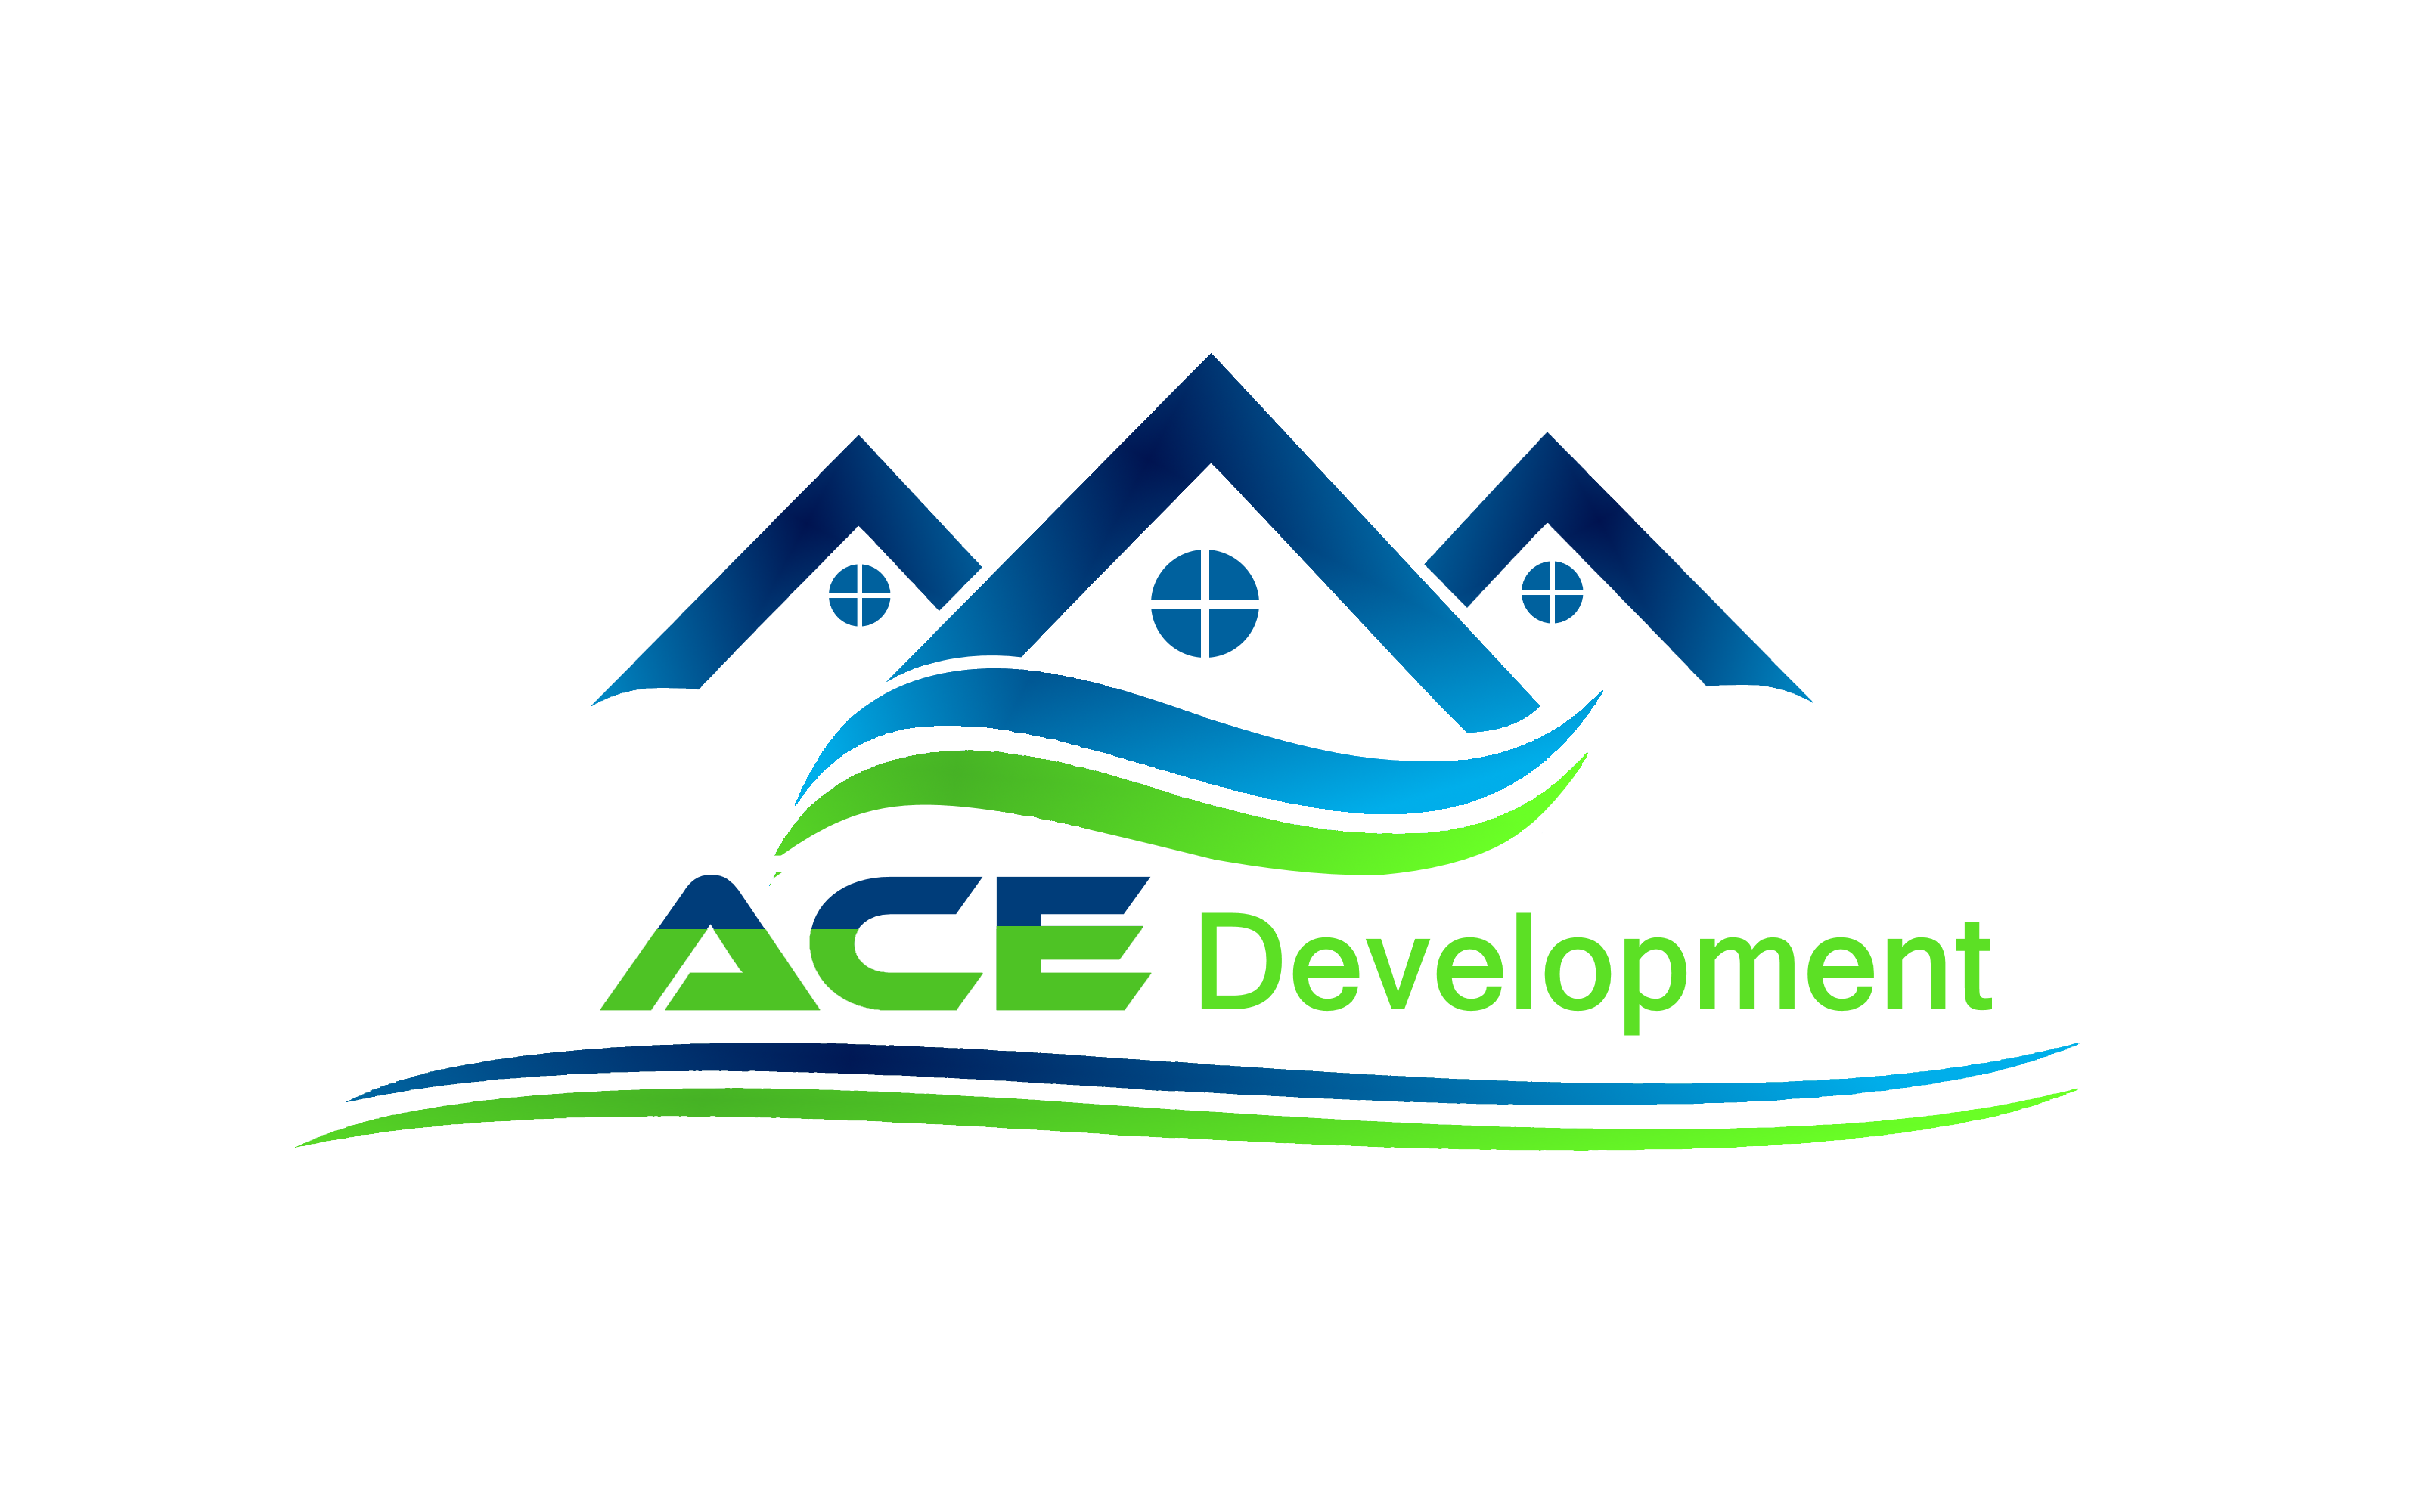 Logo Design by Roberto Bassi - Entry No. 72 in the Logo Design Contest Fun Logo Design for Ace development.